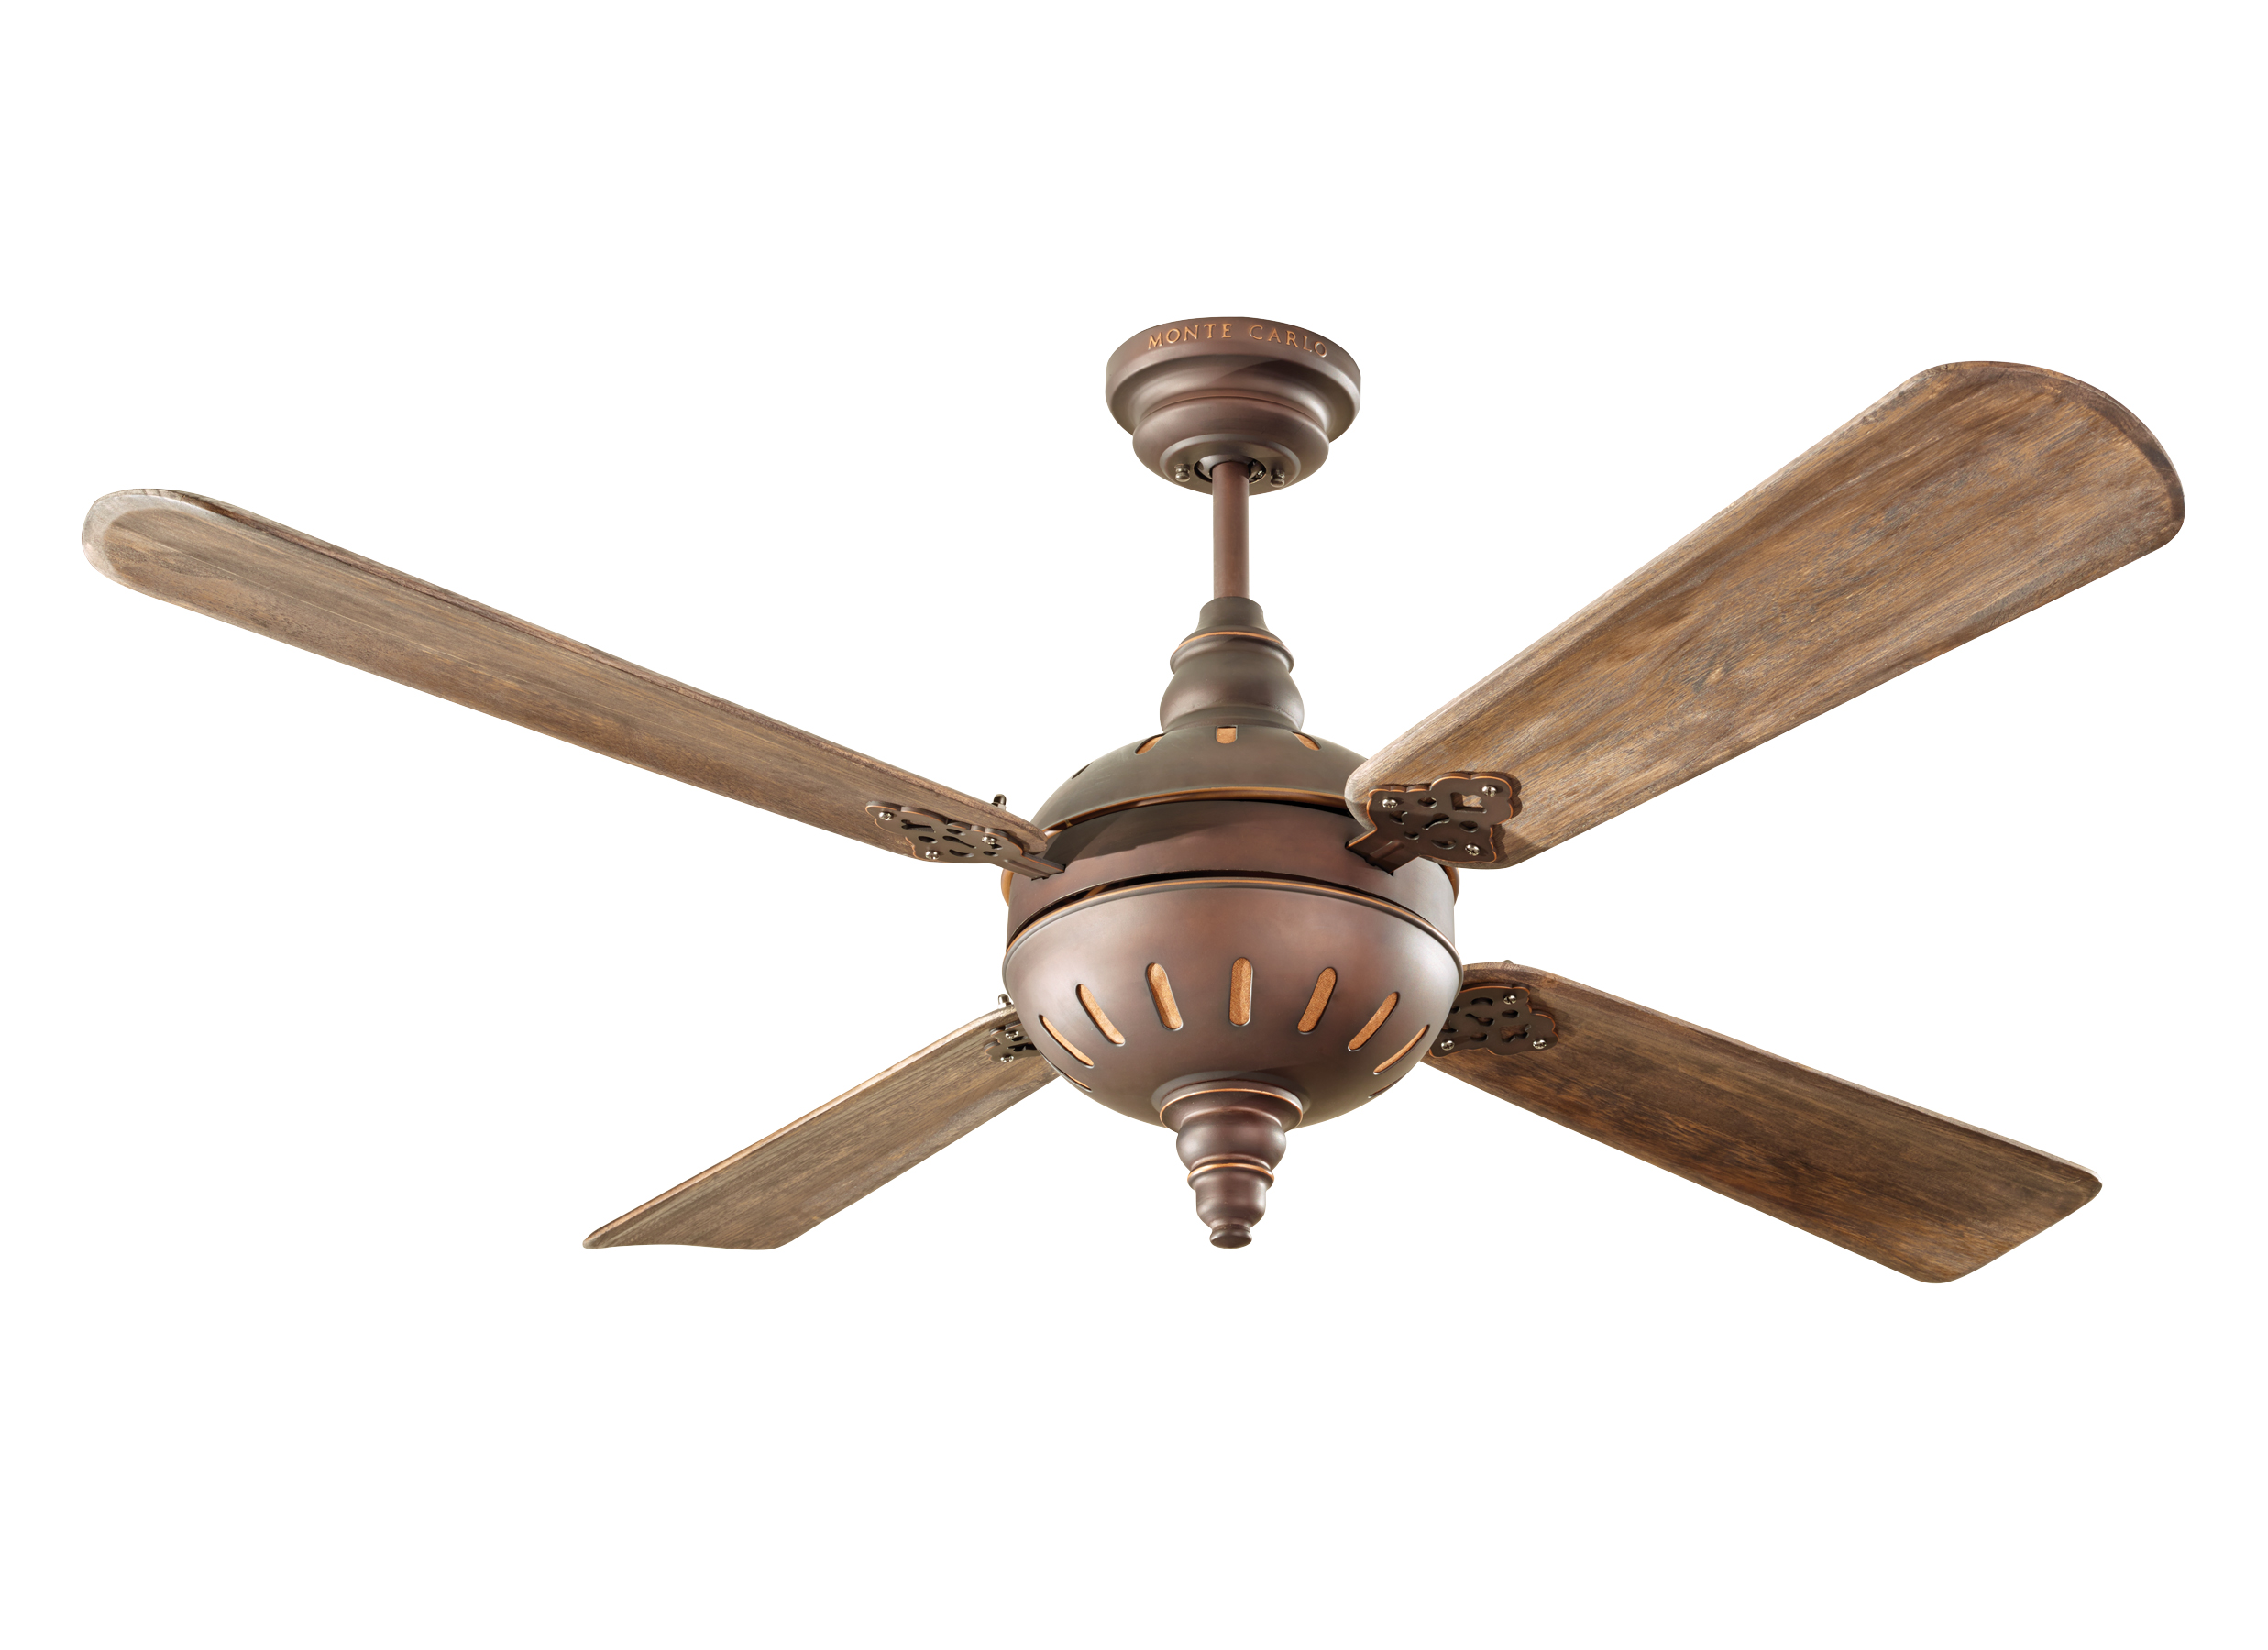 profile of bronze size excellent light cagetyle dane kit fan kits low concept picture farmhouse full industrial fans ceiling